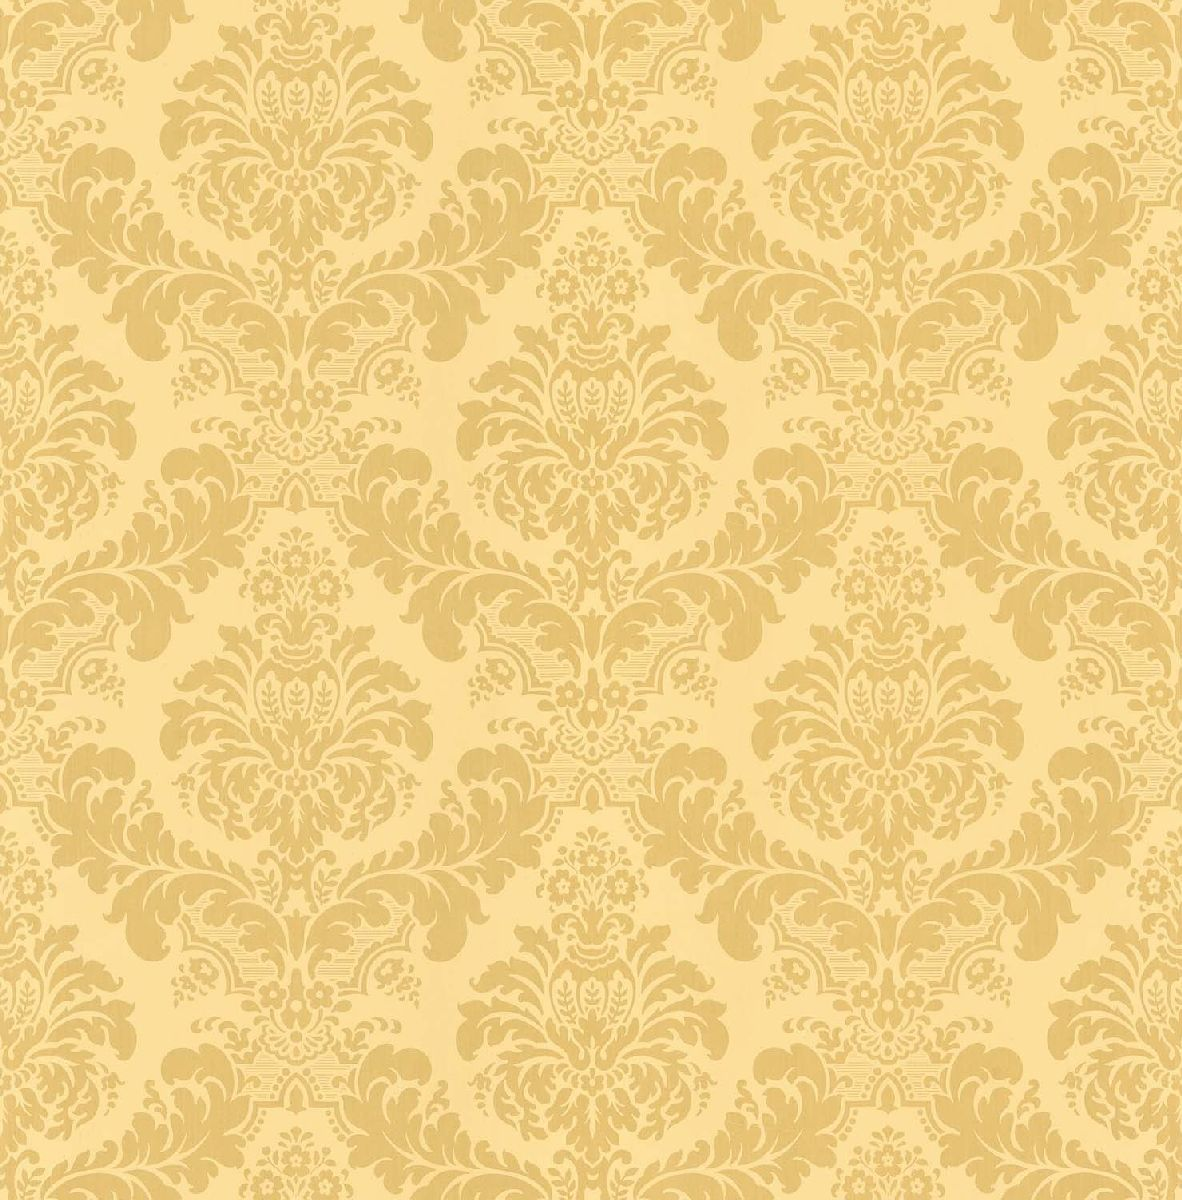 vinyl wallpaper baroque pattern gold 298108 Collection Country 1182x1200